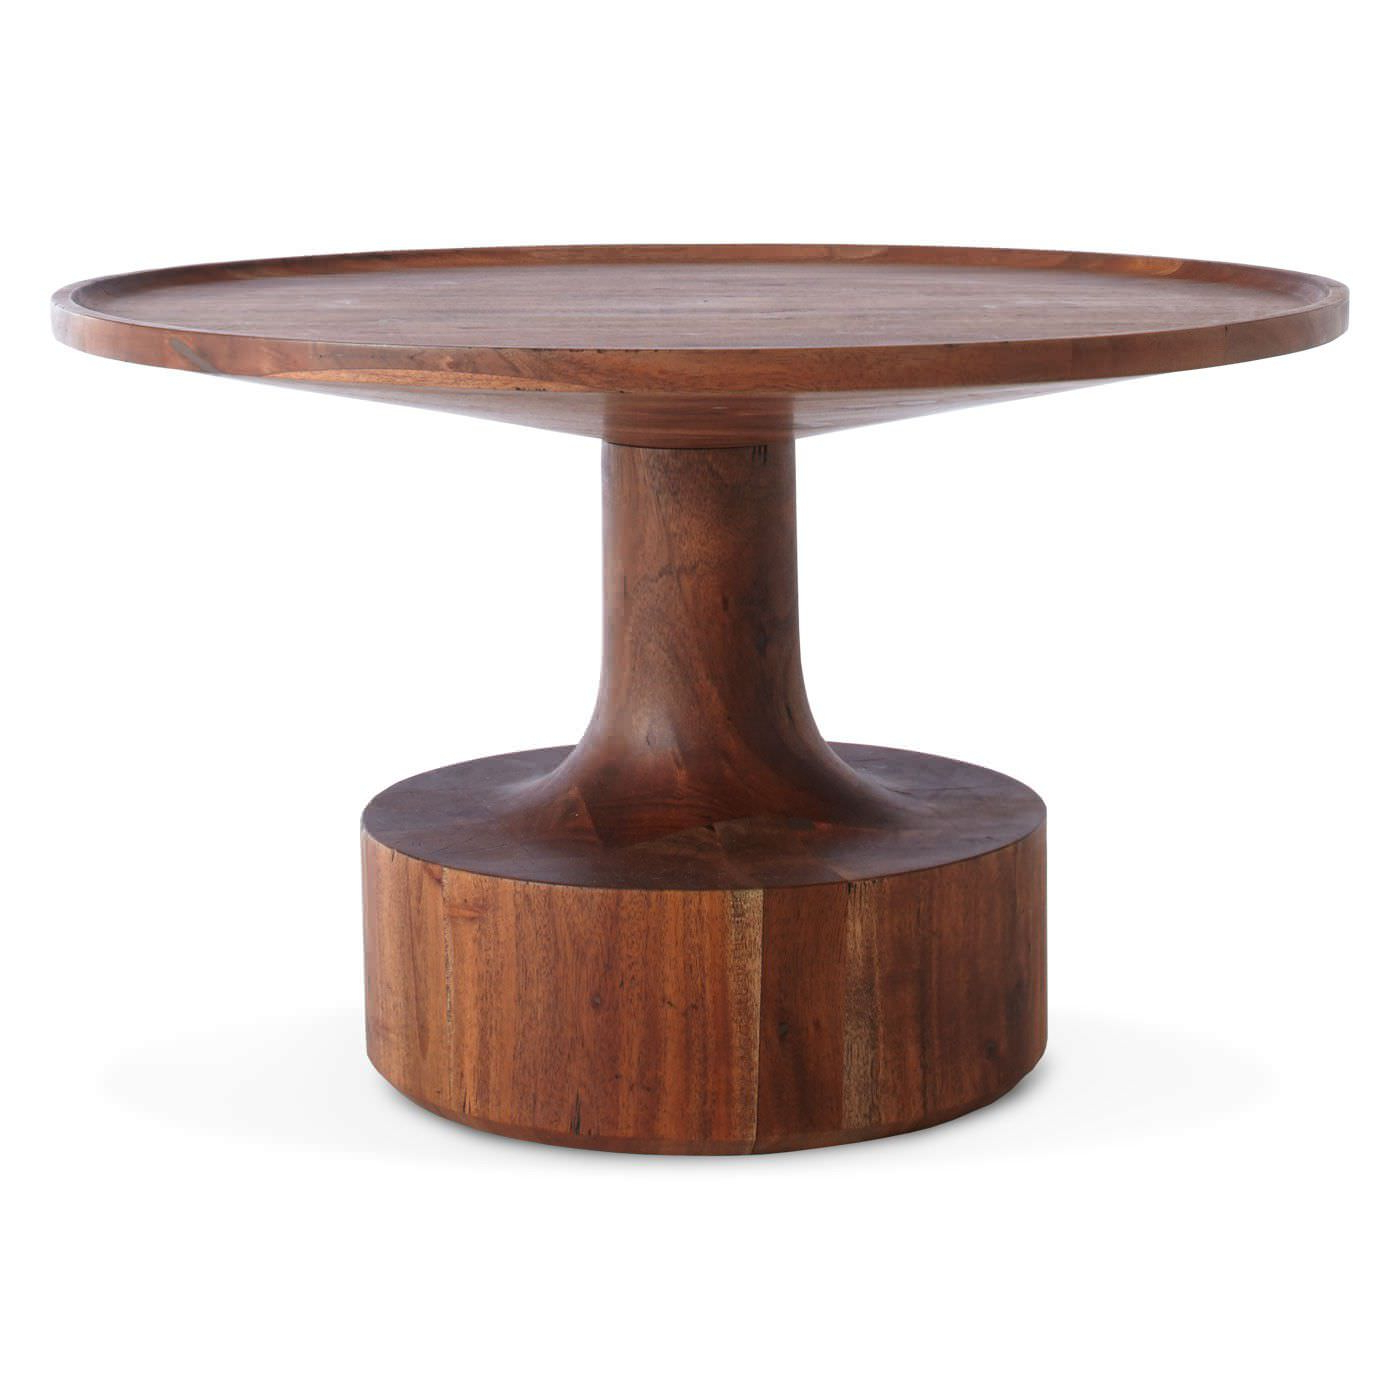 Most Recently Released Swell Round Coffee Tables With Regard To Contemporary Coffee Table / Solid Wood / Round – Turn – Blu Dot (View 7 of 20)